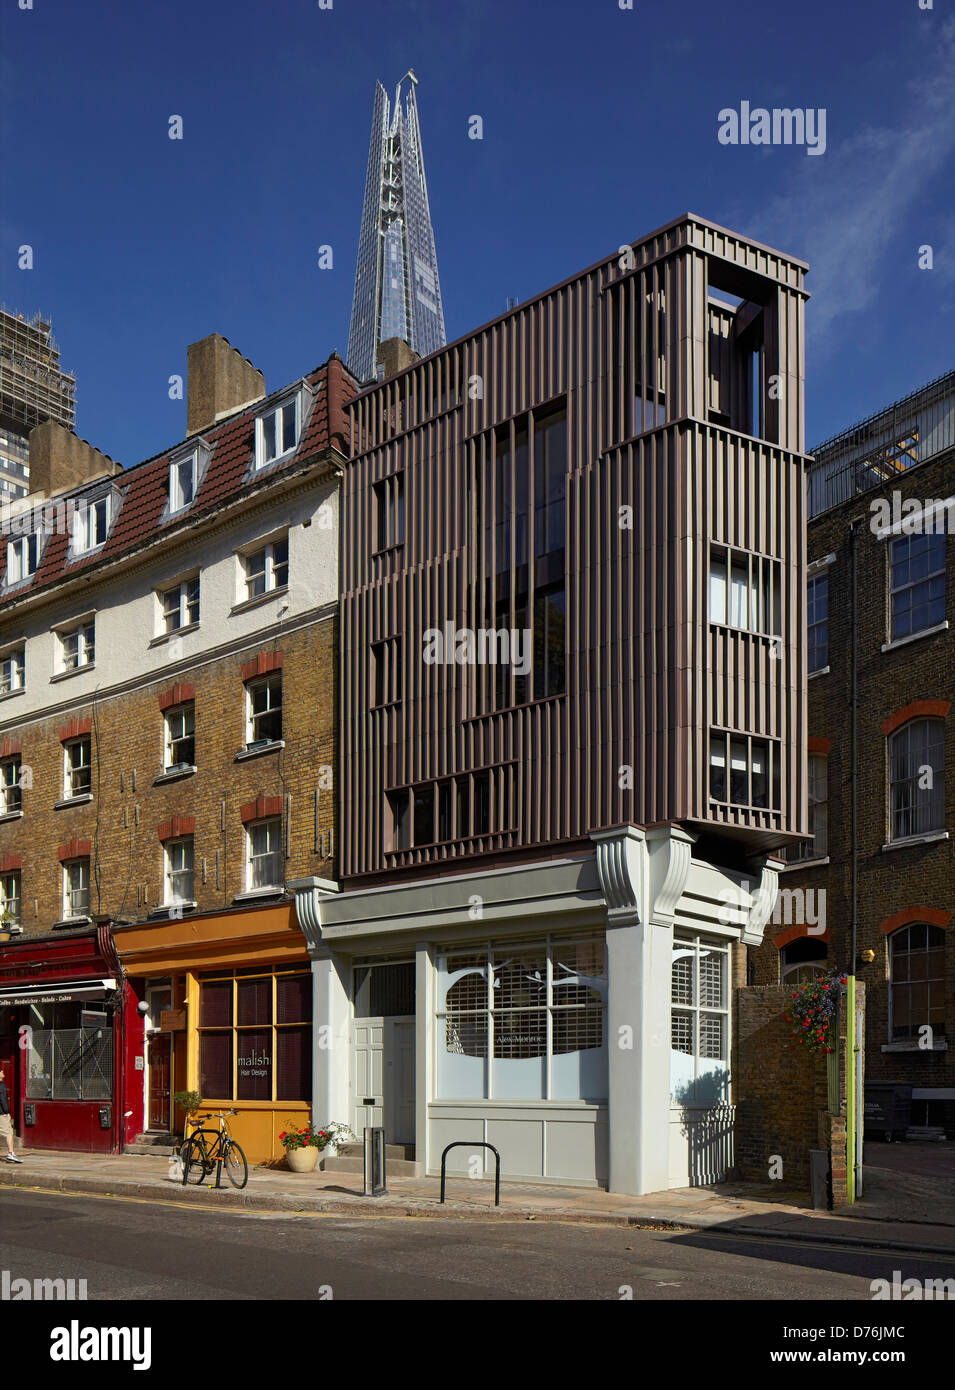 Alex Monroe Studio, Snowsfields, London, United Kingdom. Architect: DSDHA, 2012. - Stock Image